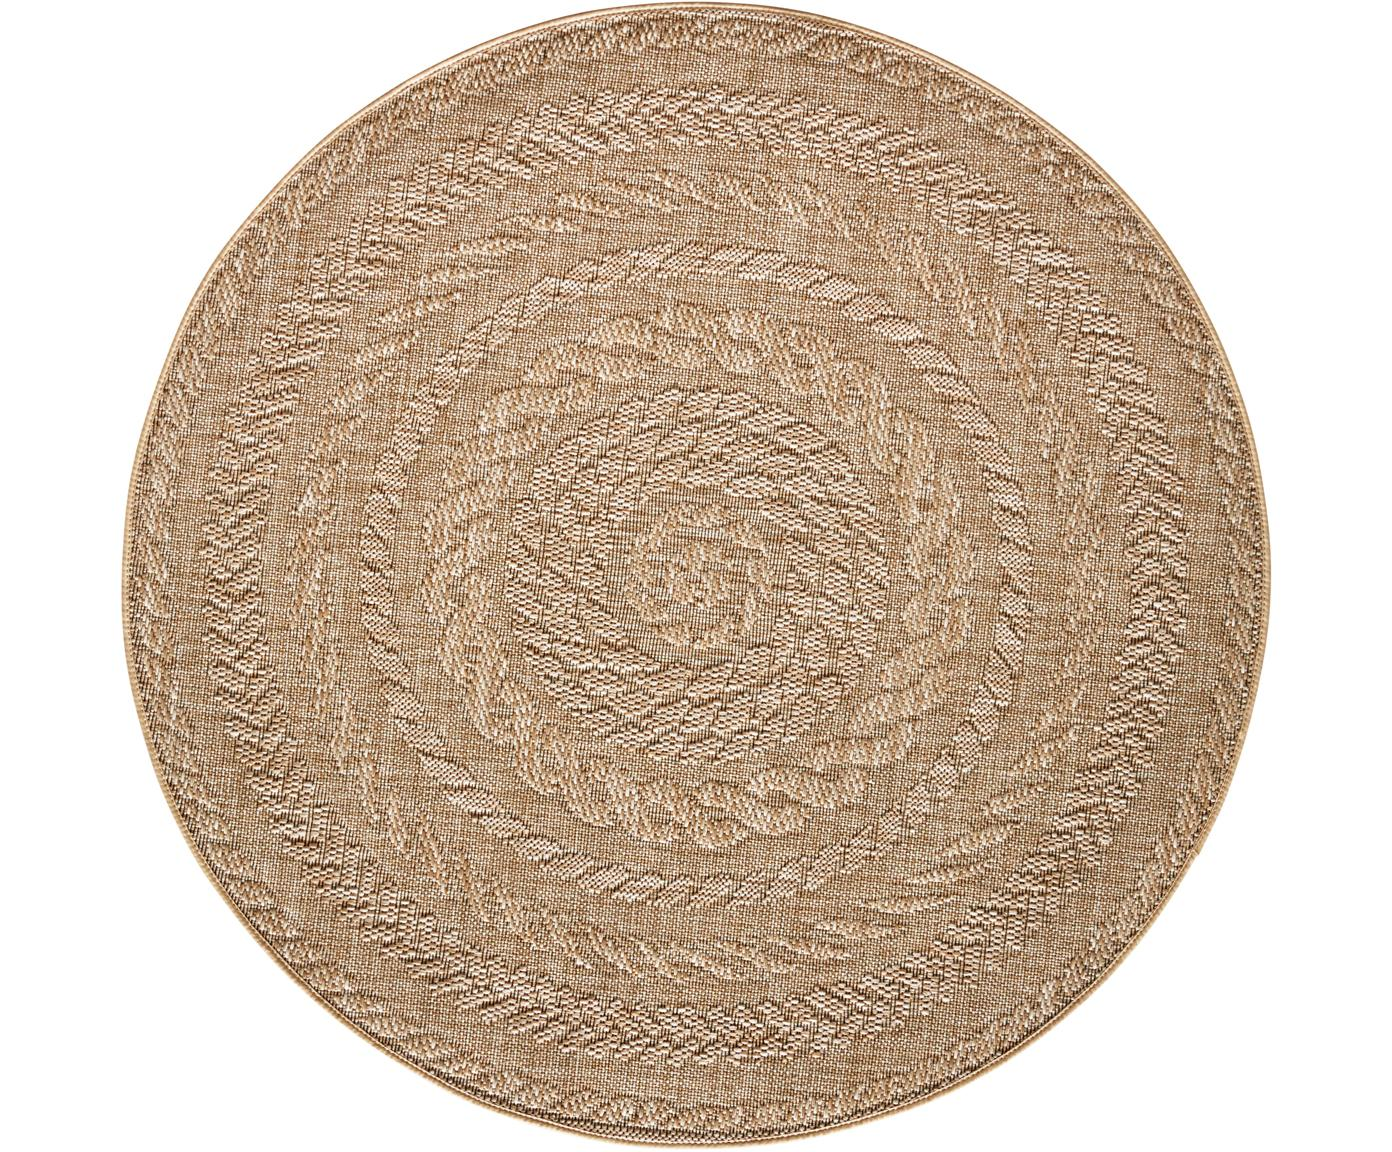 Rond in- en outdoor vloerkleed Almendro in jute look, Polypropyleen, Beige, bruin, Ø 160 cm